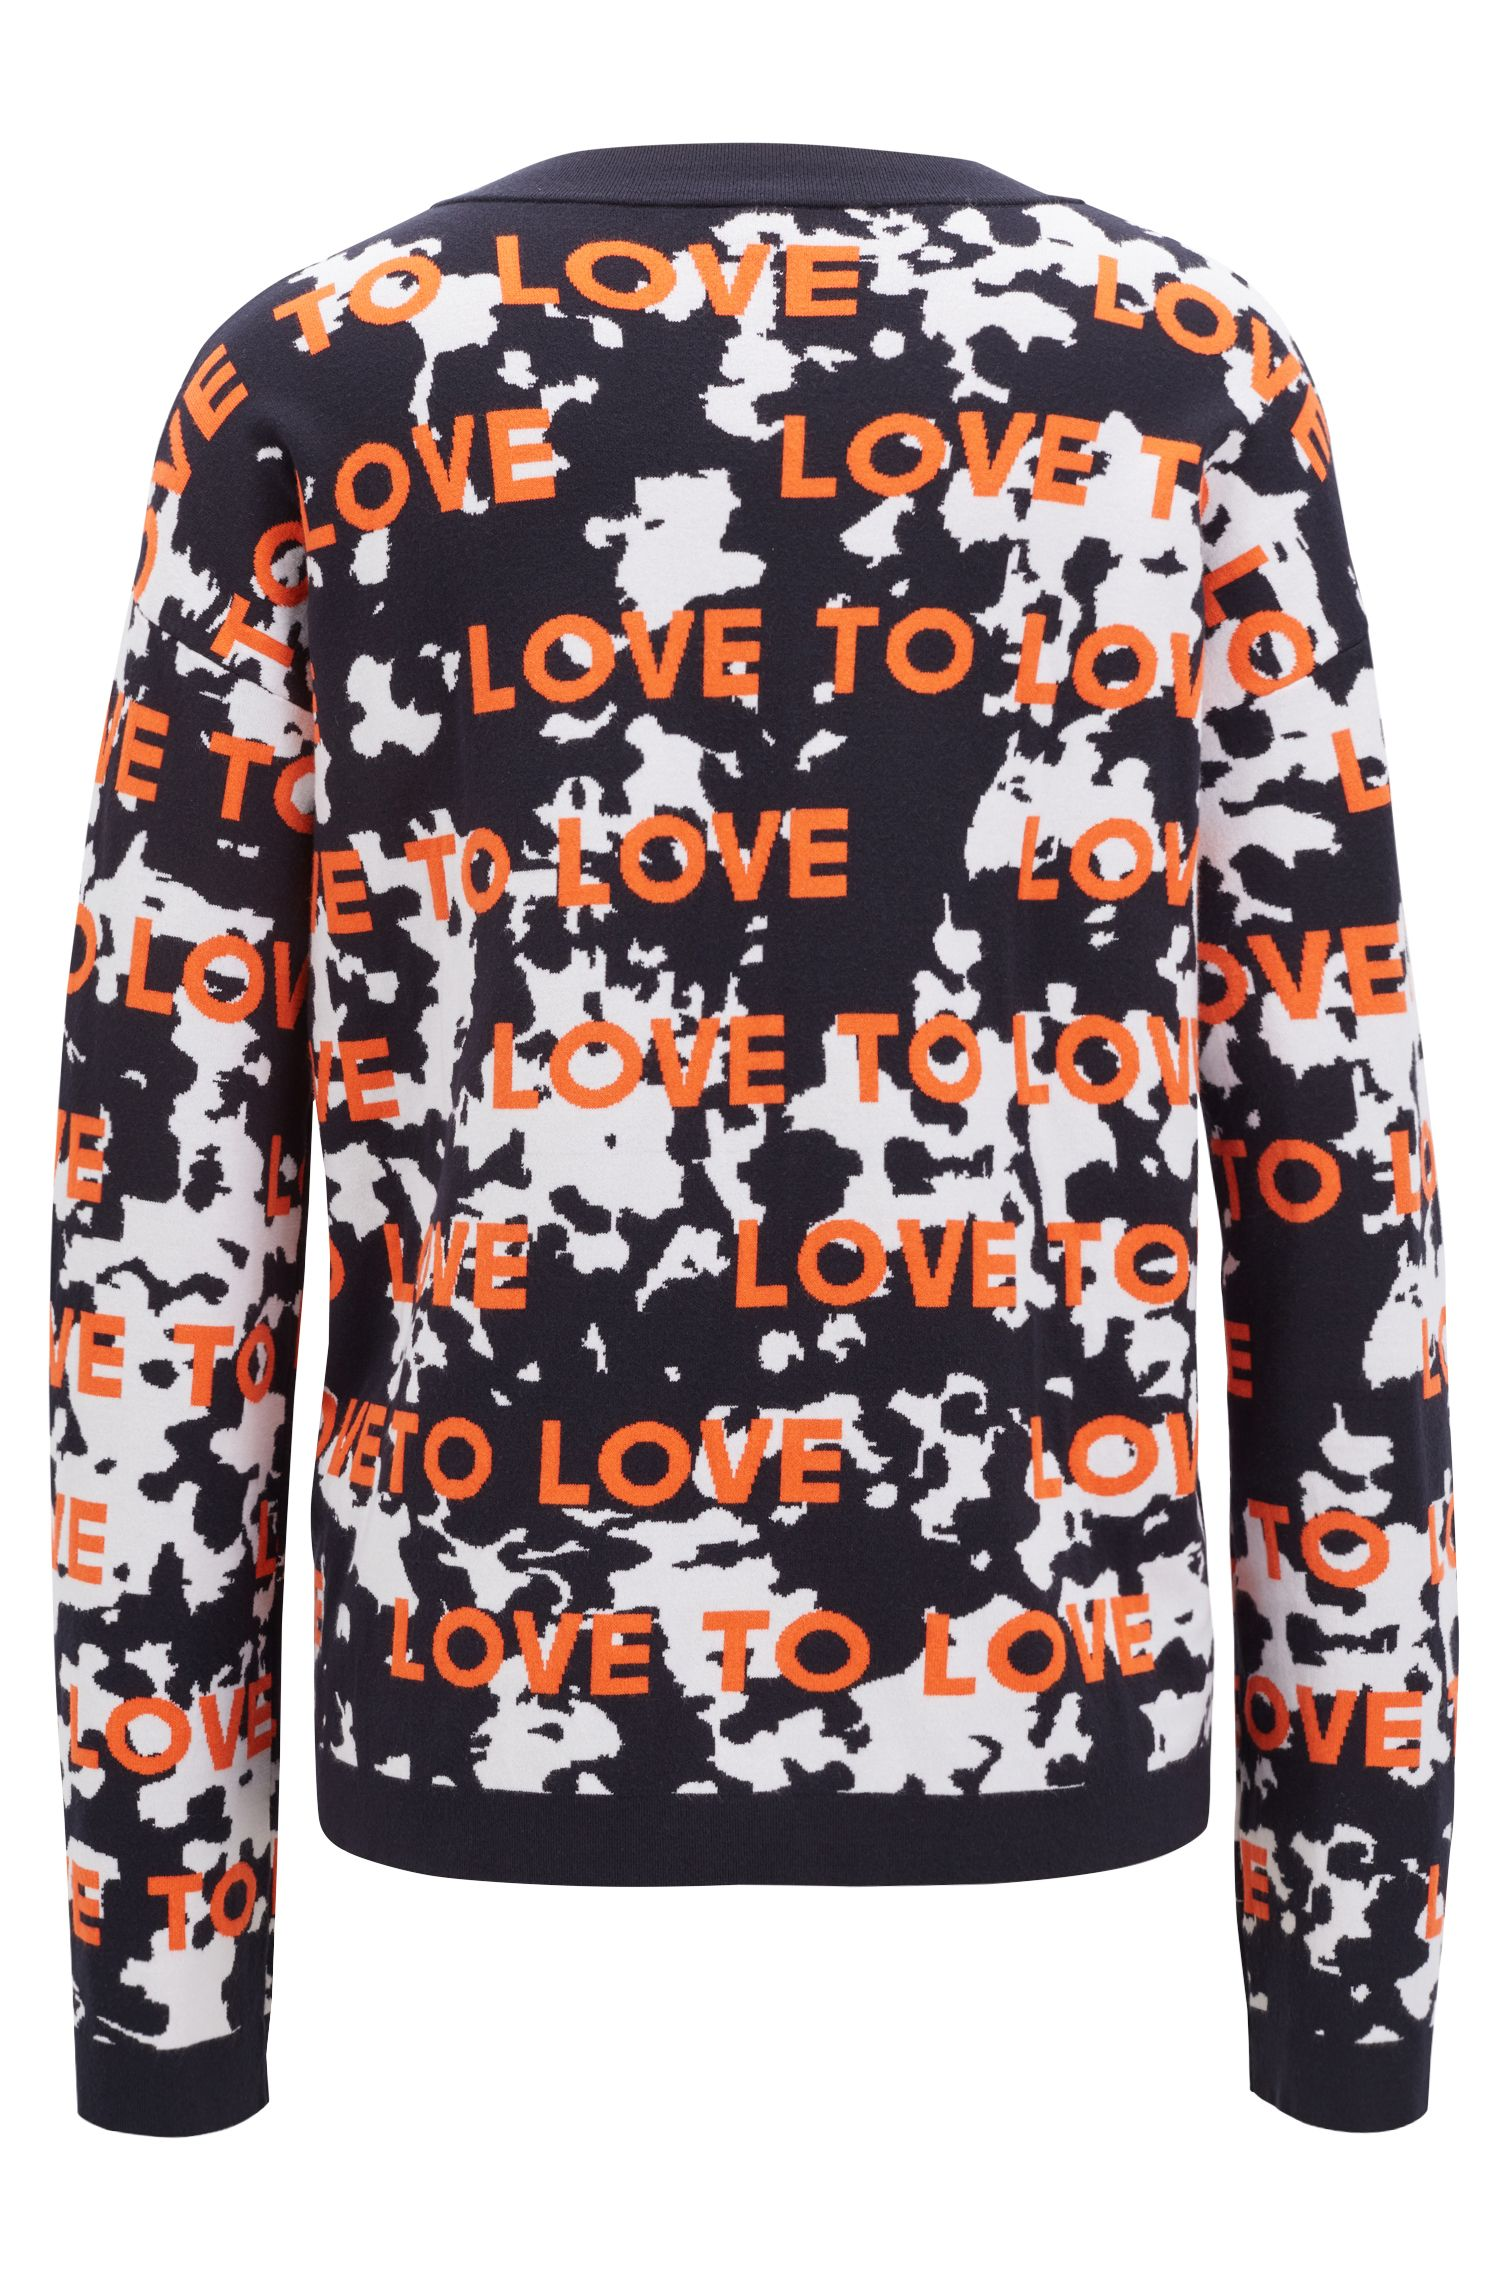 Relaxed-fit sweater with jacquard-knitted slogan, Patterned